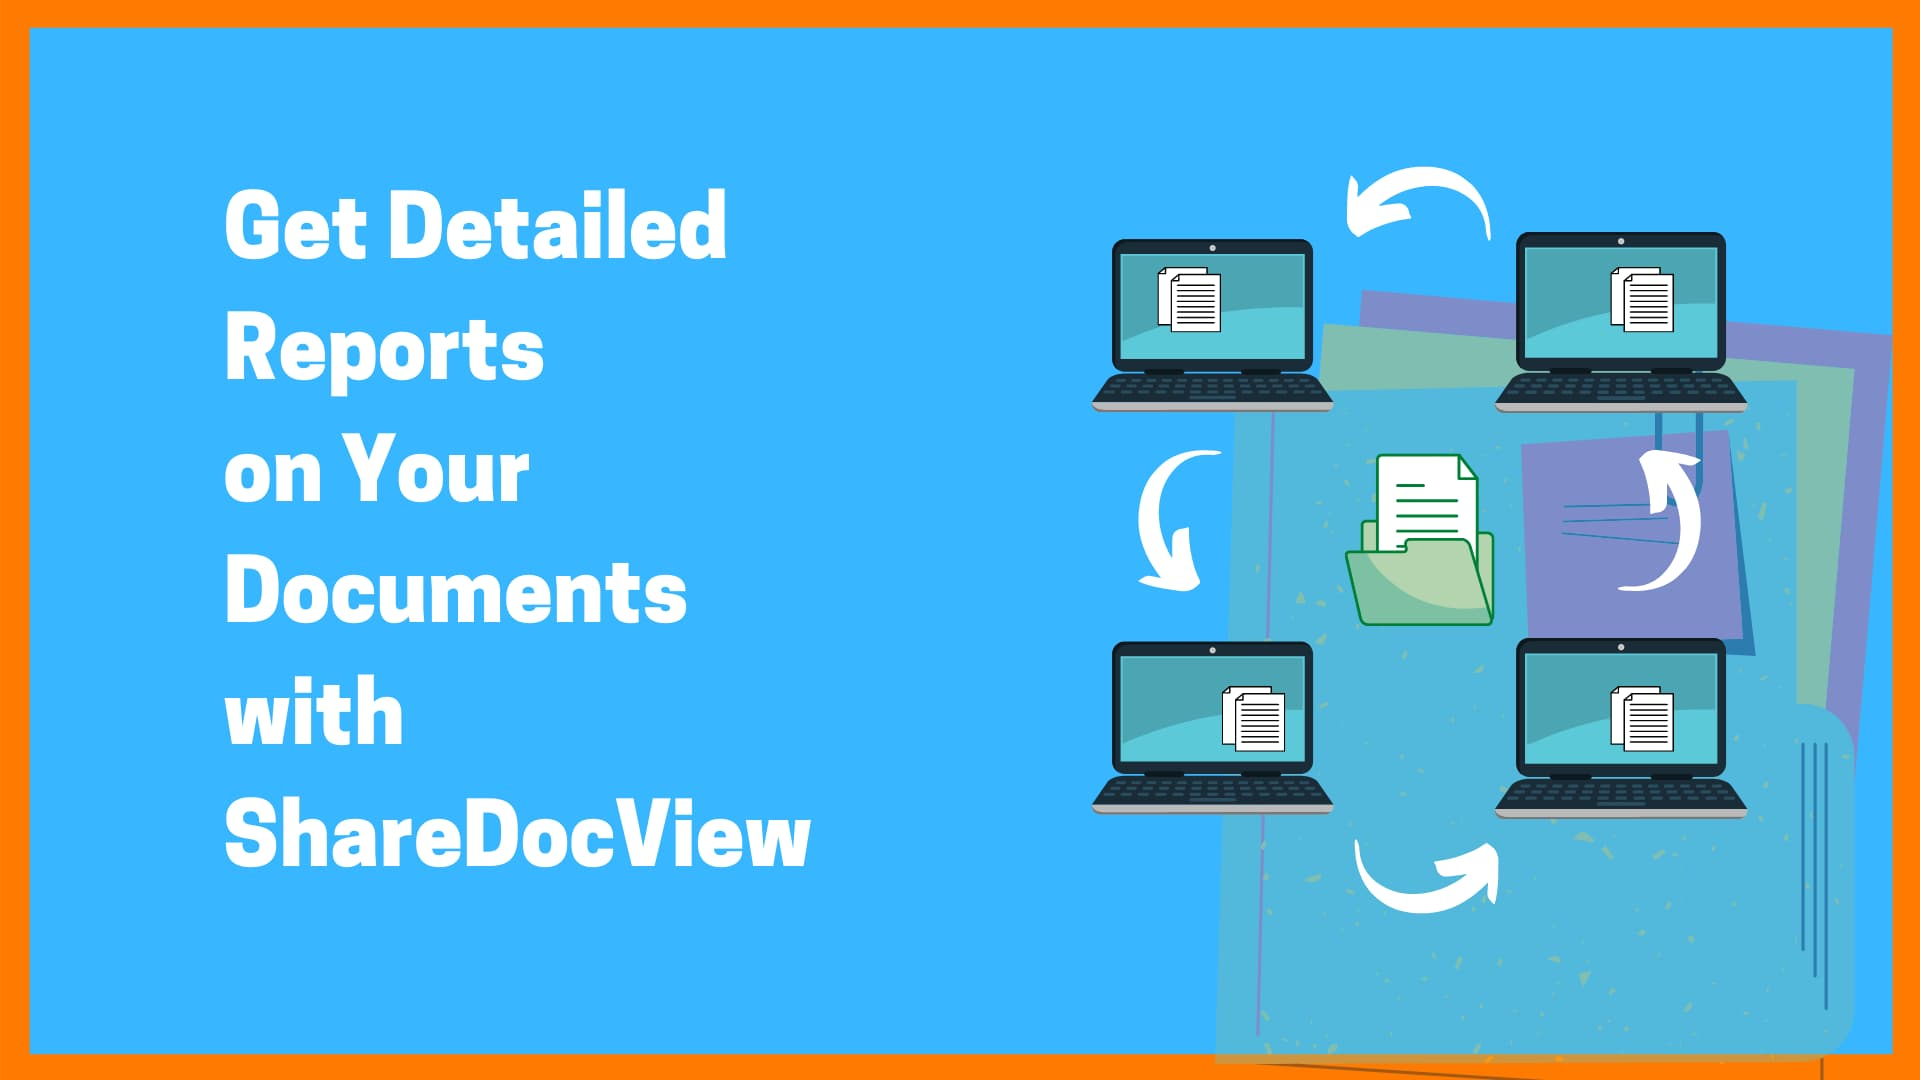 ShareDocView: Get Detailed Analytics for Your Shared Documents